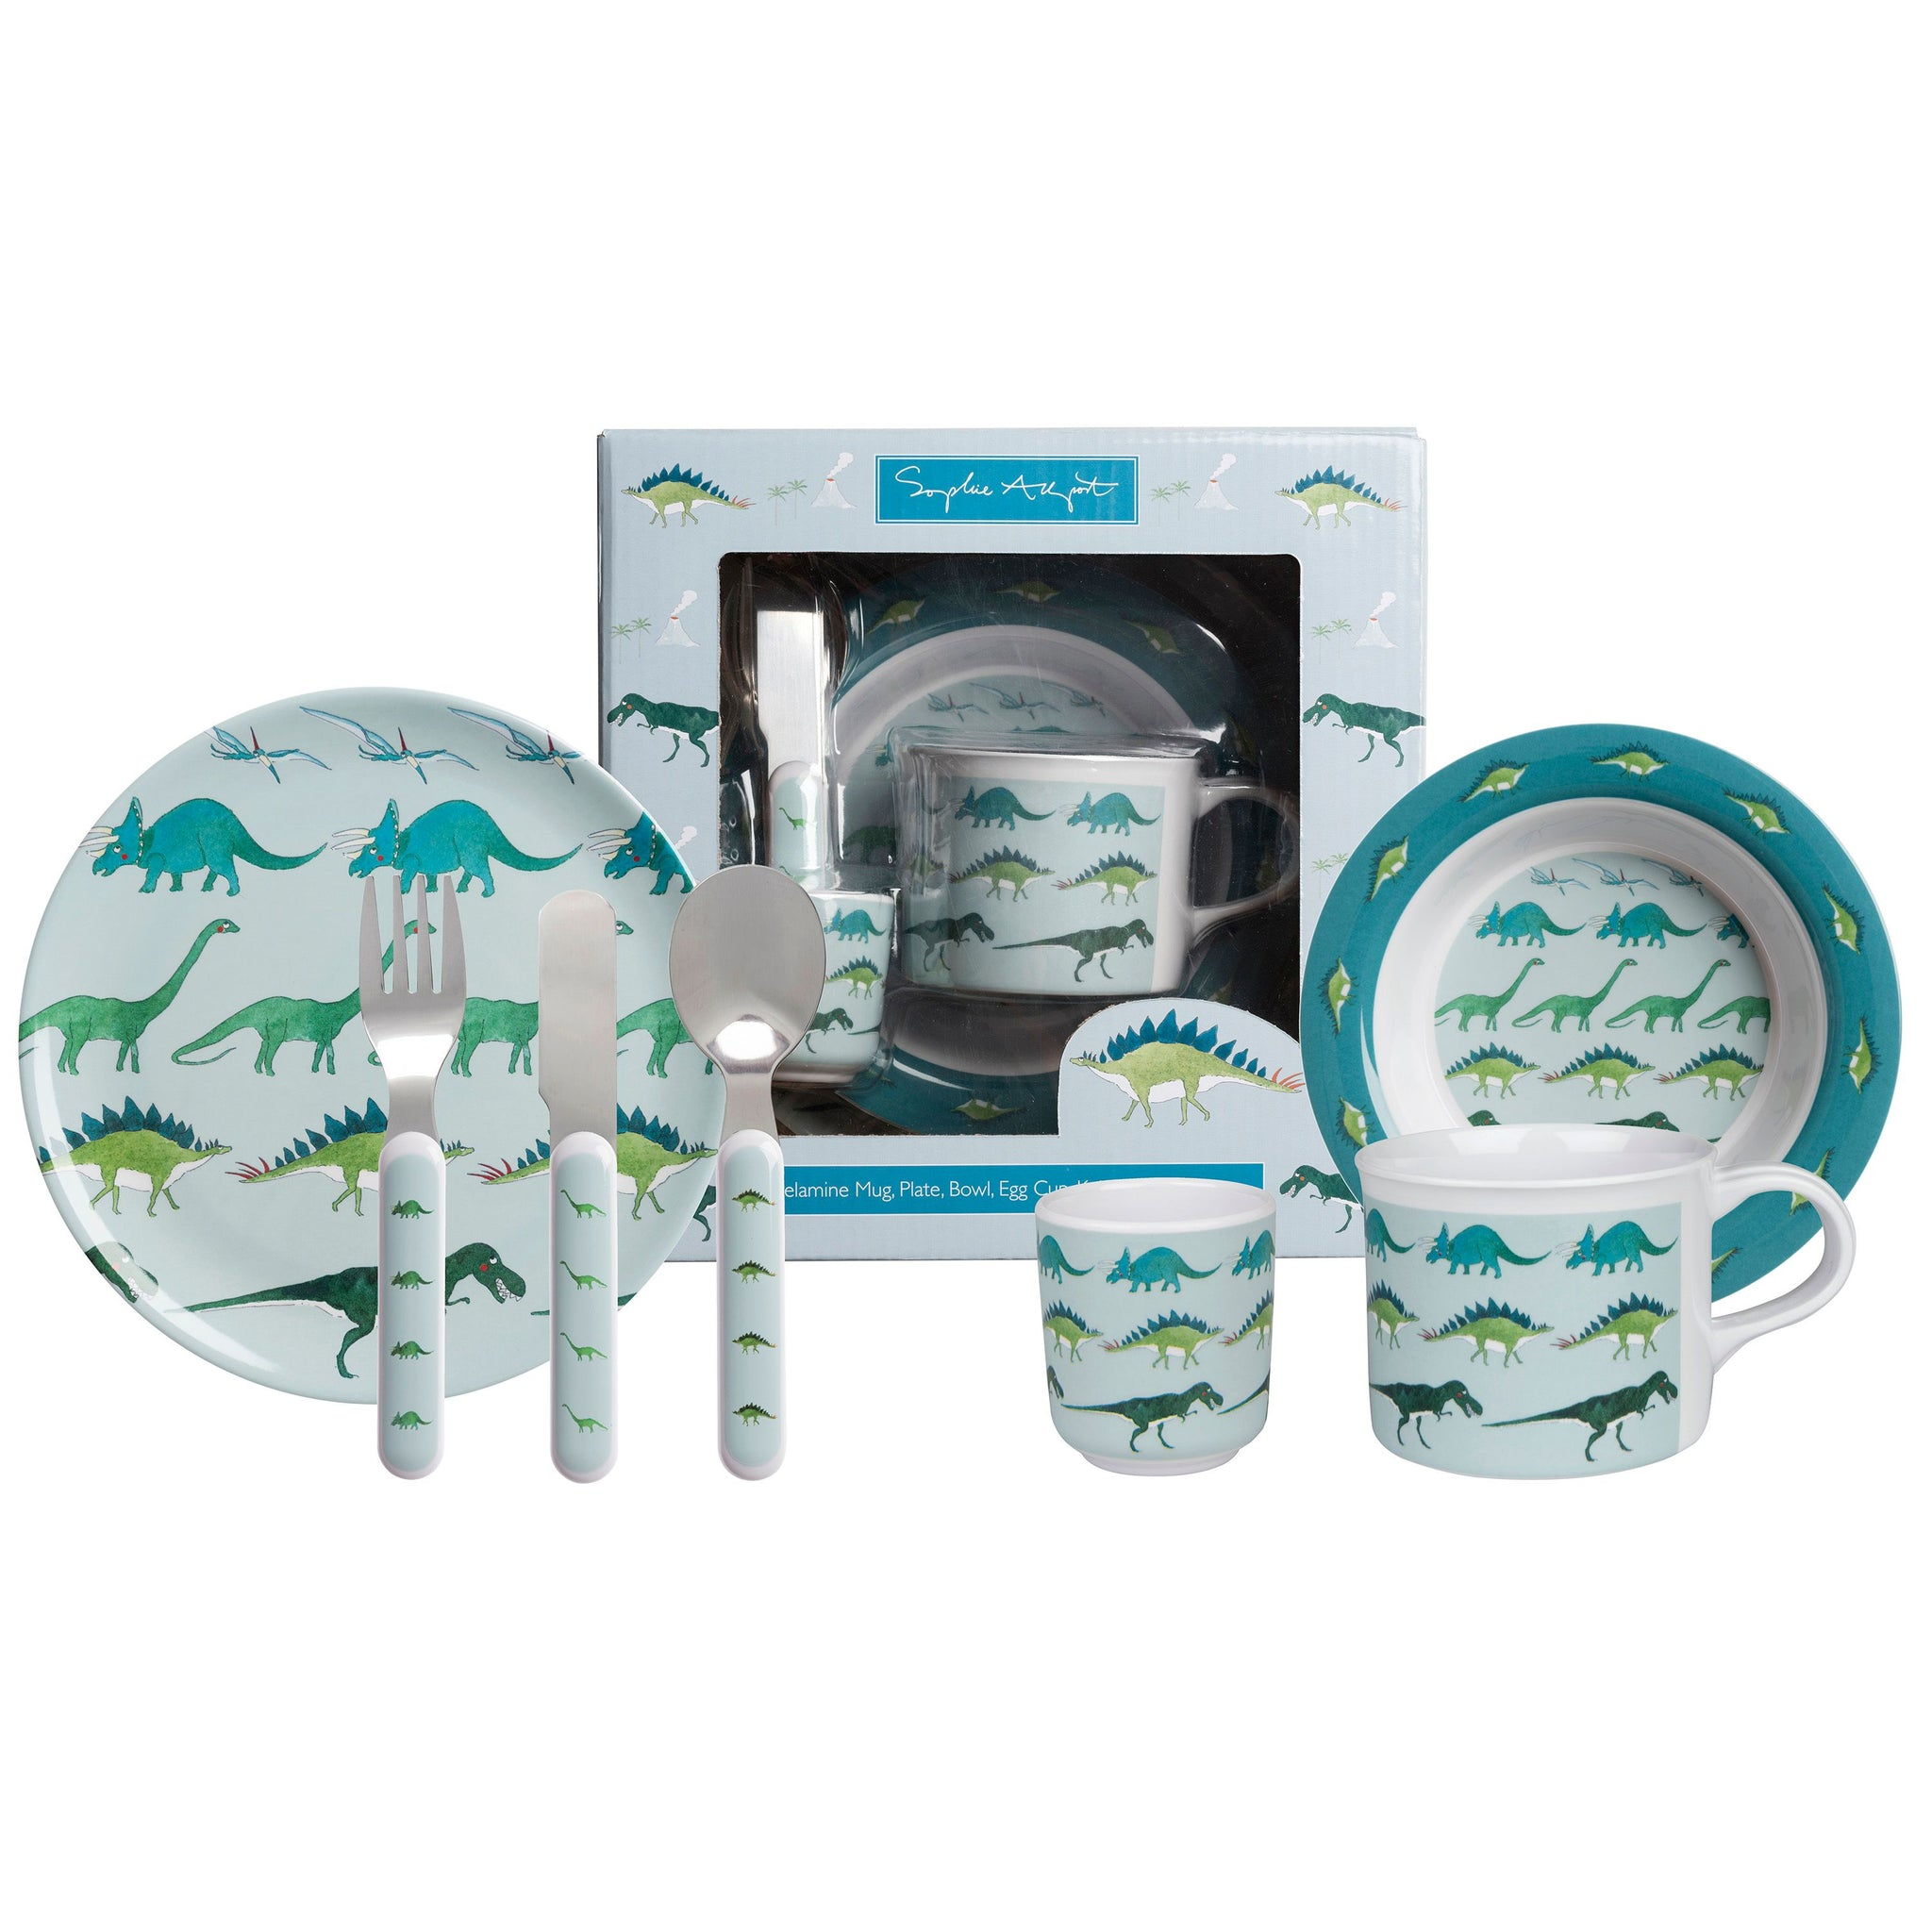 This Dinosaur themed seven piece dining set includes a plate, bowl, cup, knife, fork, spoon and egg cup. A lovely little gift set for children's birthdays and christenings.  The sage blue Dinosaur design features the Diplodocus, Stegosaurus, Triceratops, flying Pterodactyls and the famous T-Rex!  100% melamine plate, cup, bowl and egg cup Set includes: plate, bowl, cup, egg cup, knife, fork and spoon Comes in a smart gift box (21cm x 21cm) Cutlery handles are plastic, metal is stainless steel Dishwasher saf